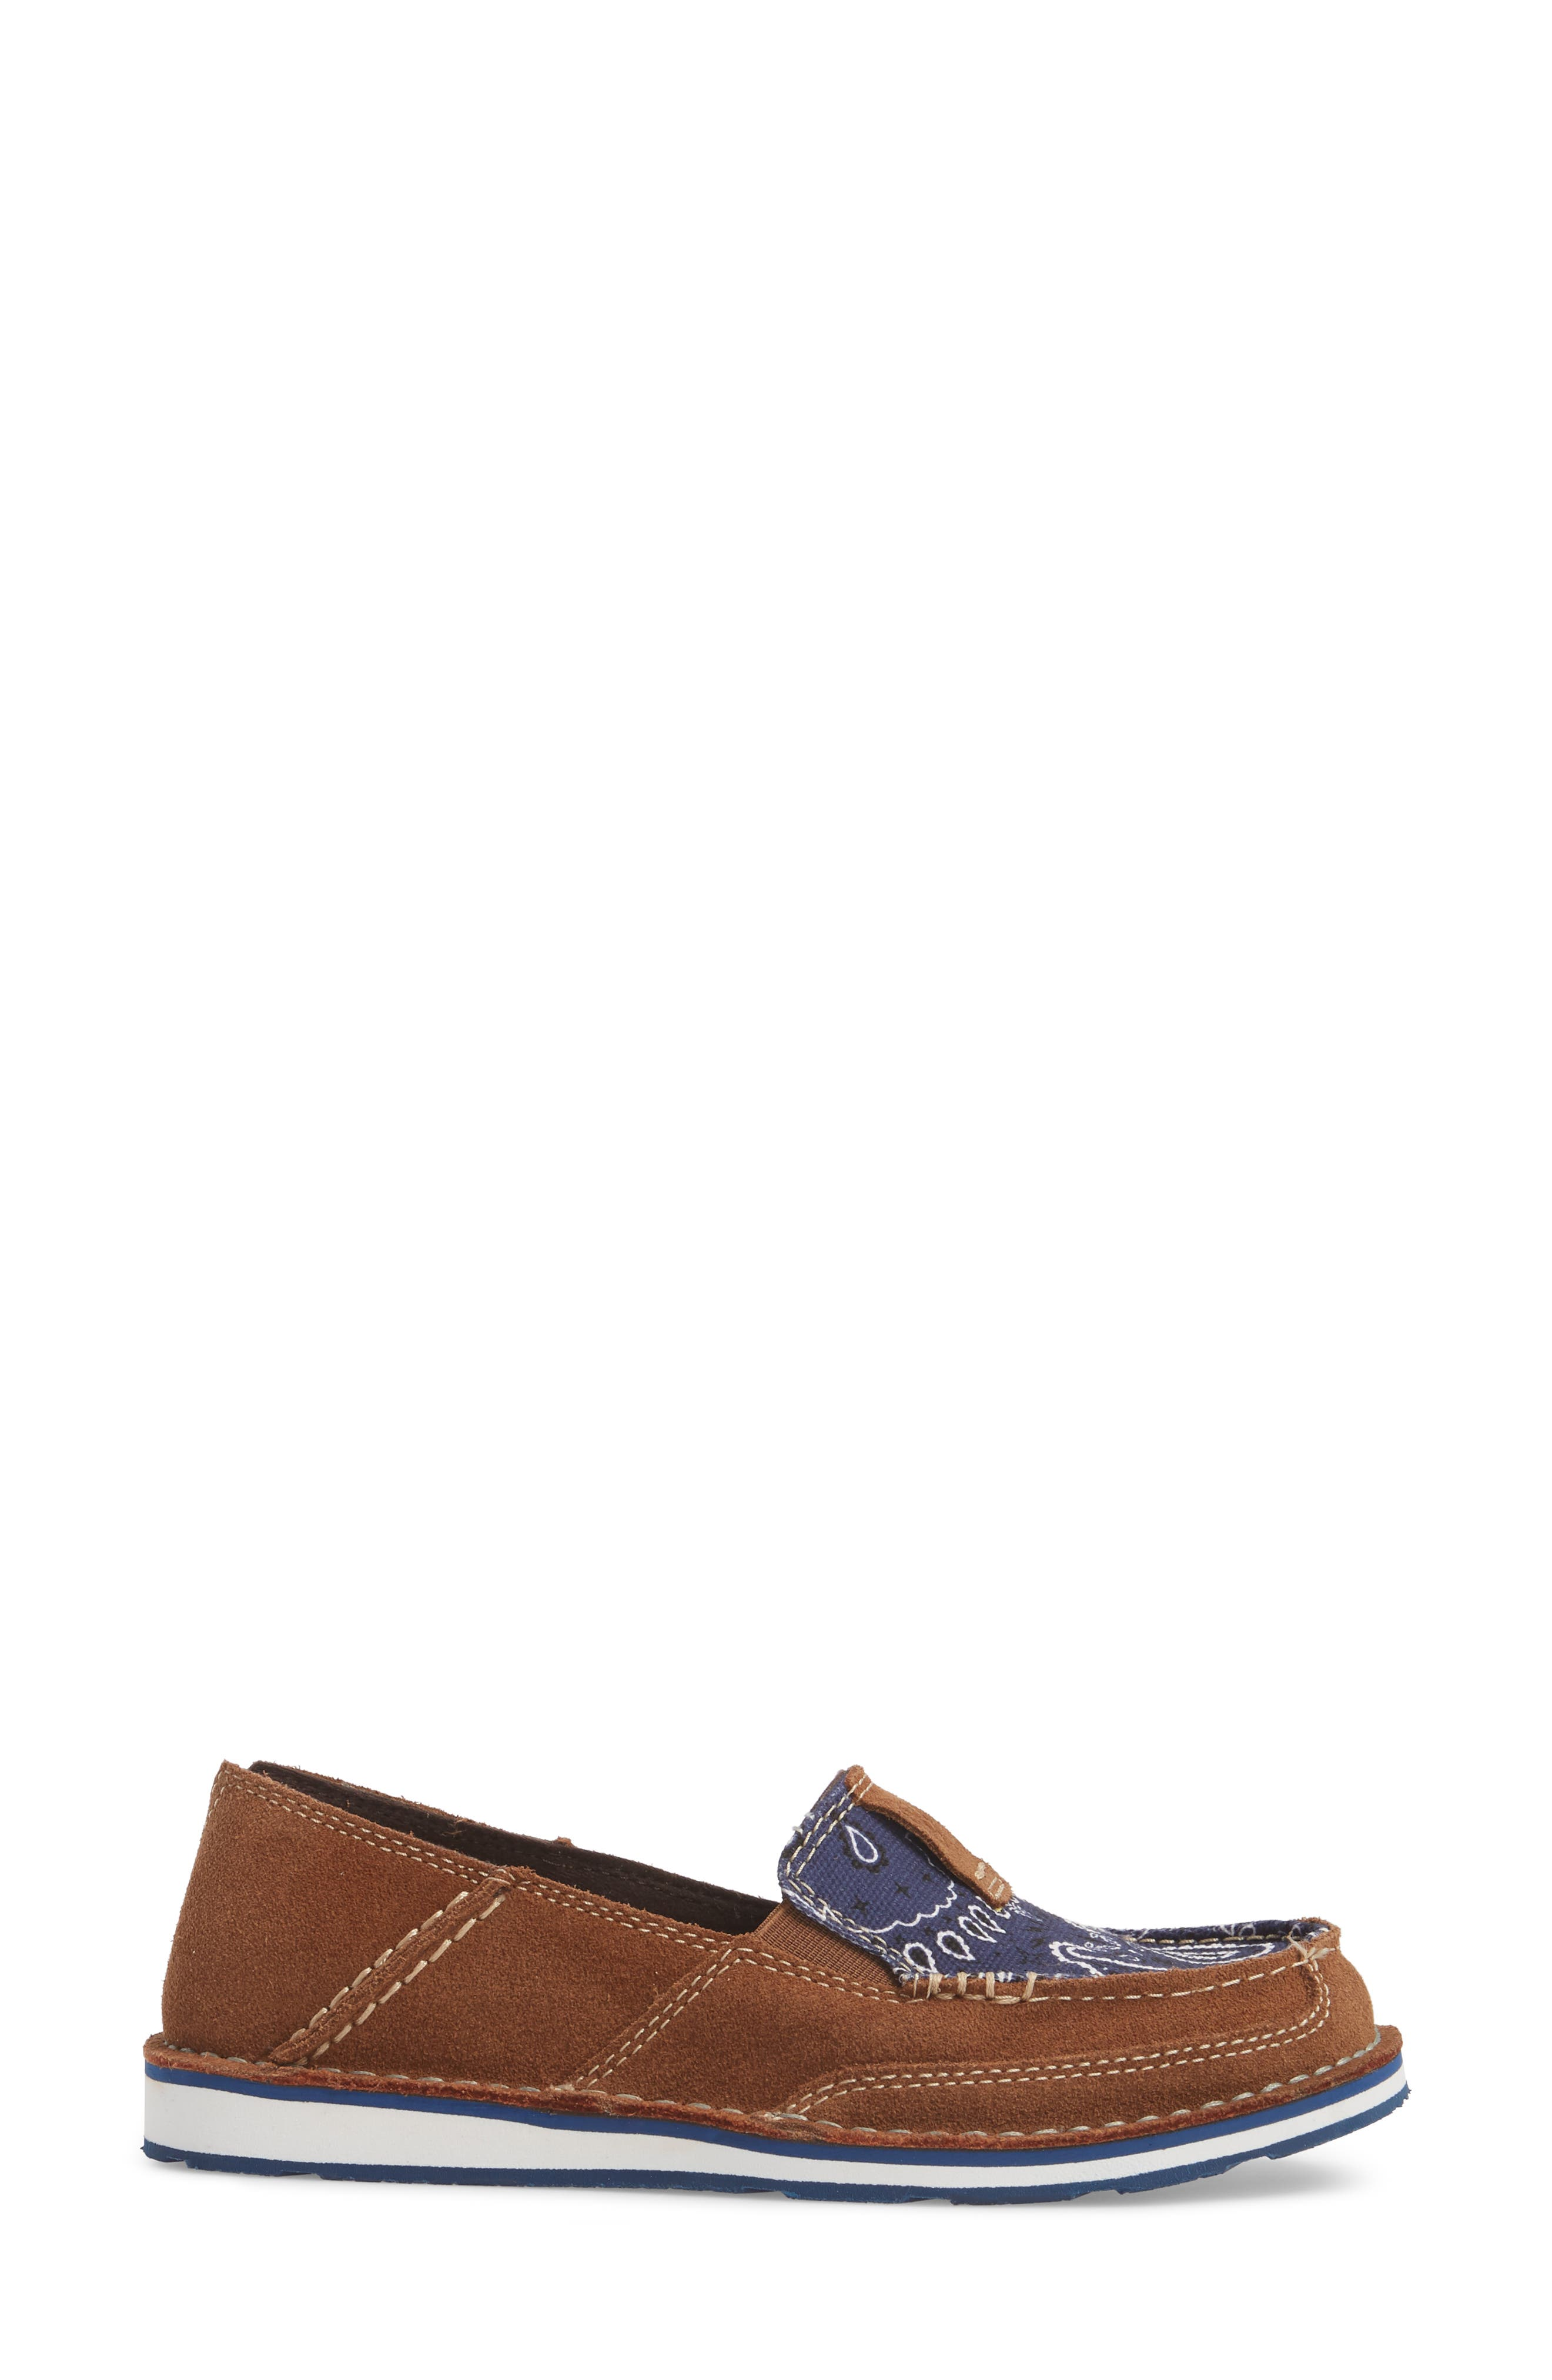 Cruiser Slip-On Loafer,                             Alternate thumbnail 3, color,                             Toffee Leather